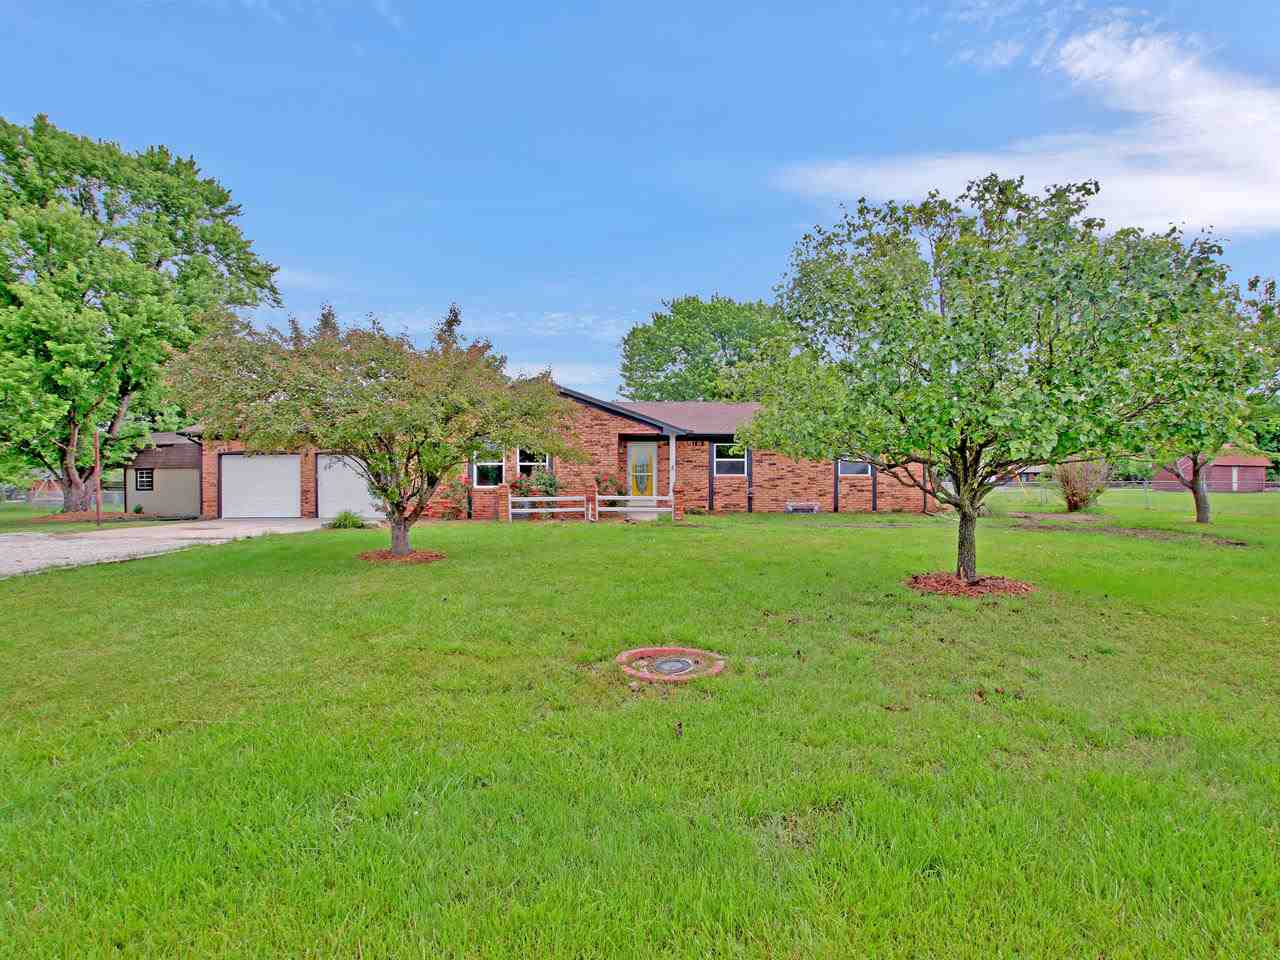 JUST LISTED - WELCOME HOME TO COUNTY LIVING in the Heart of Wichita! - No HOA! No neighbors across t